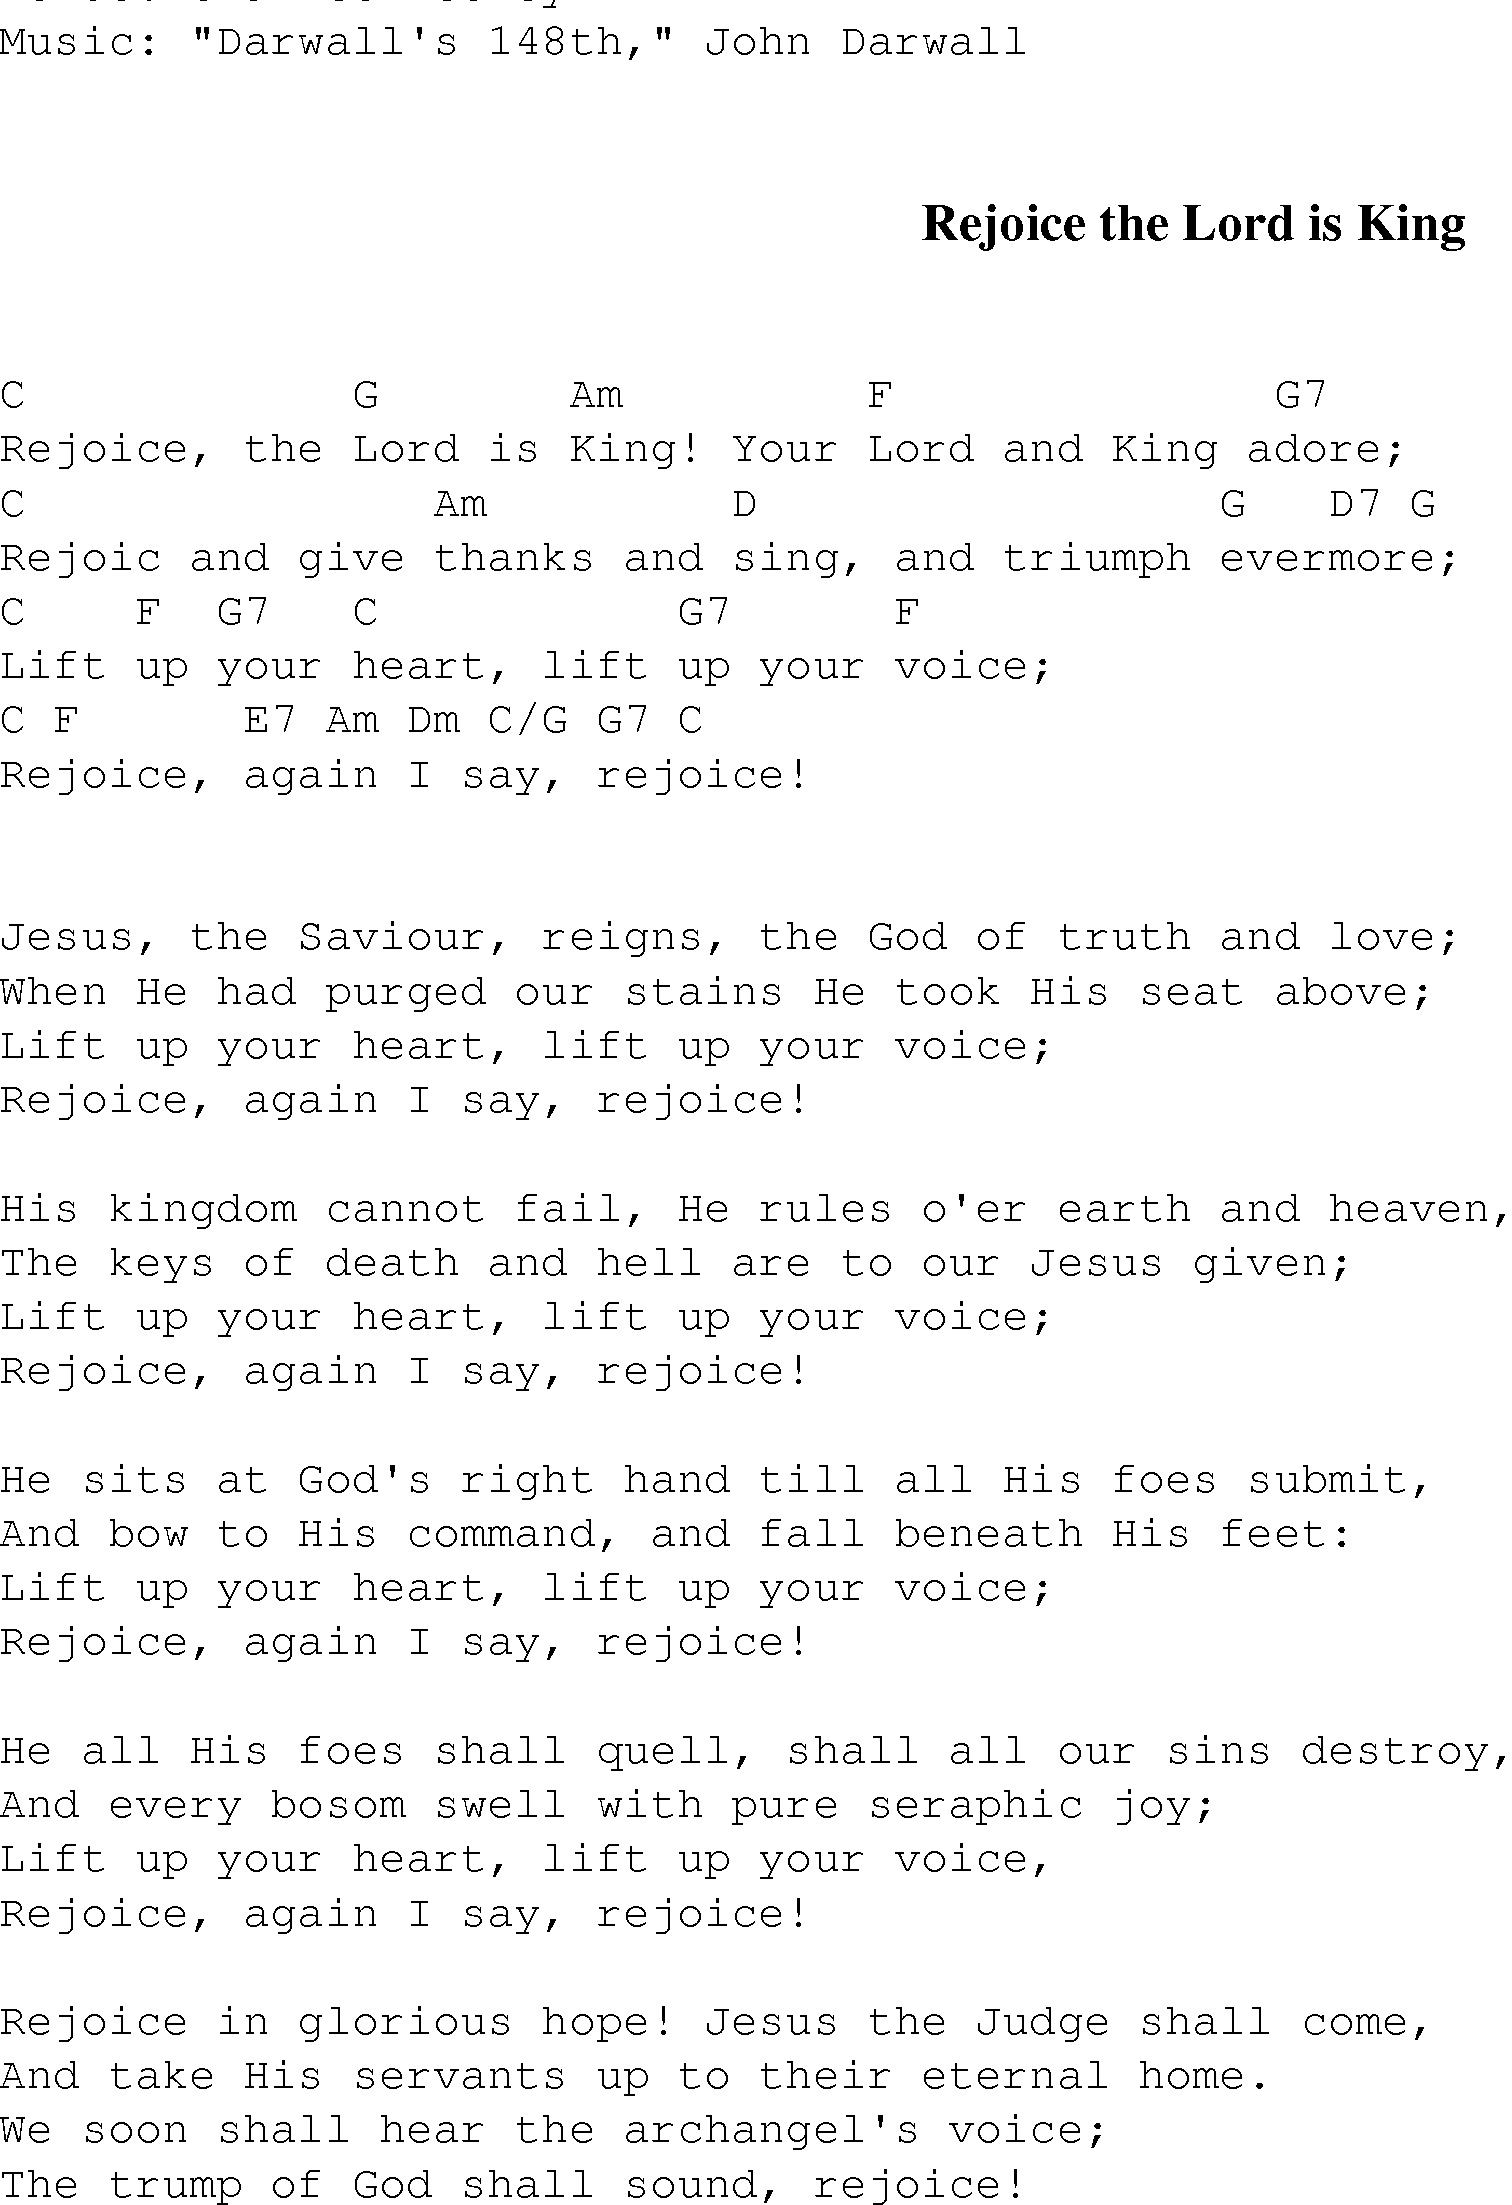 Rejoice The Lord Is King Christian Gospel Song Lyrics And Chords